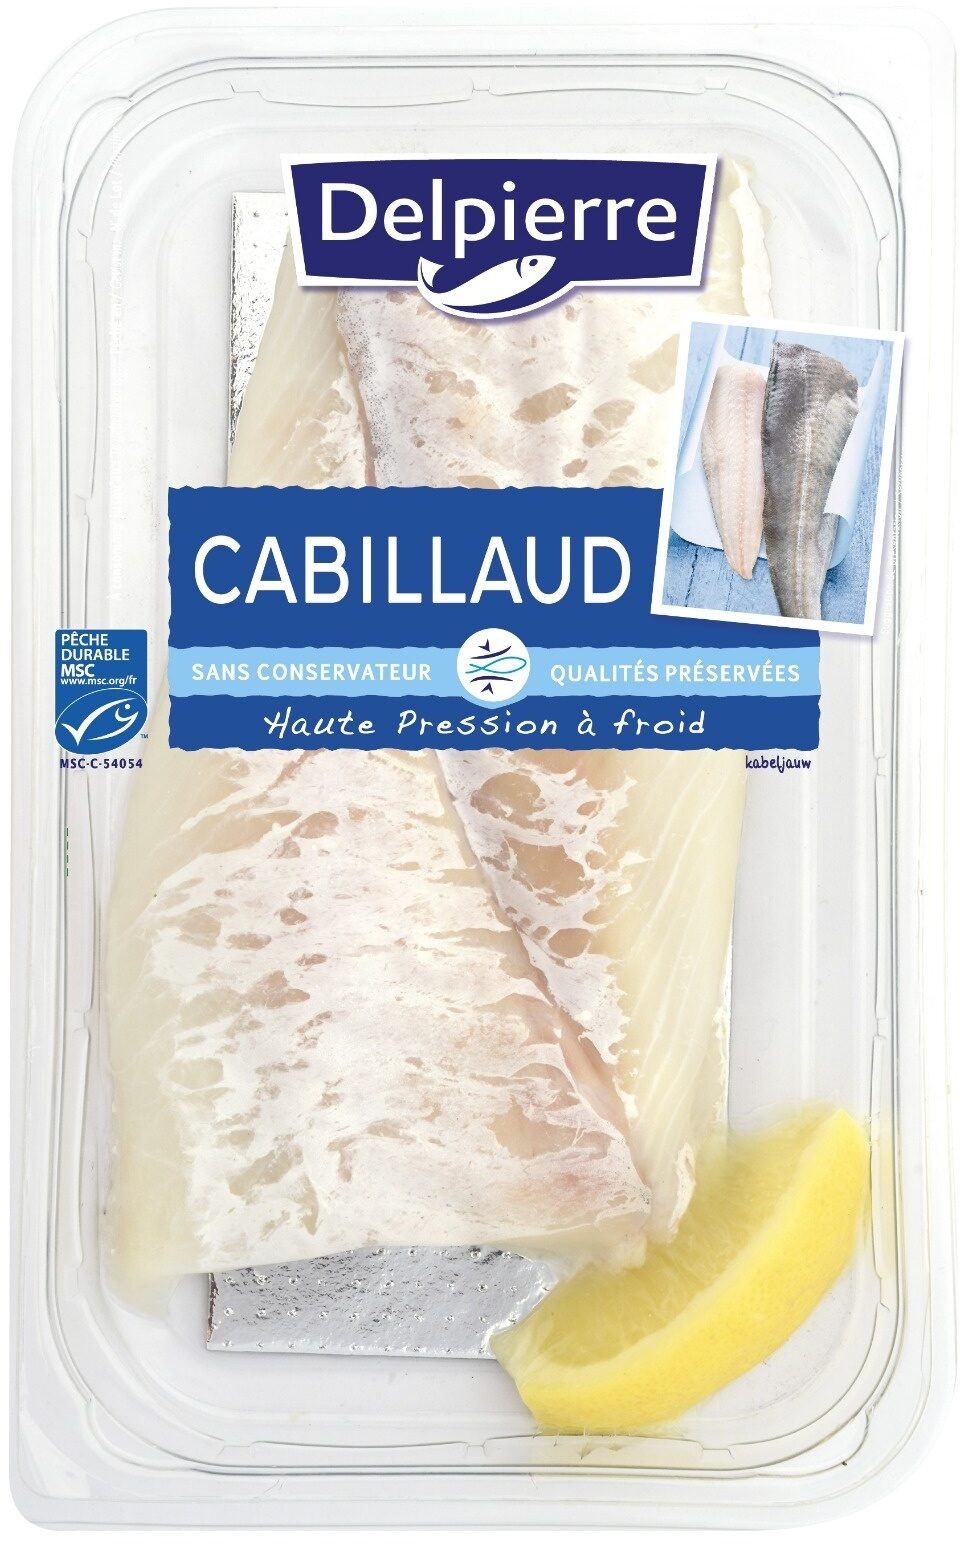 Filets de Cabillaud Delpierre - Product